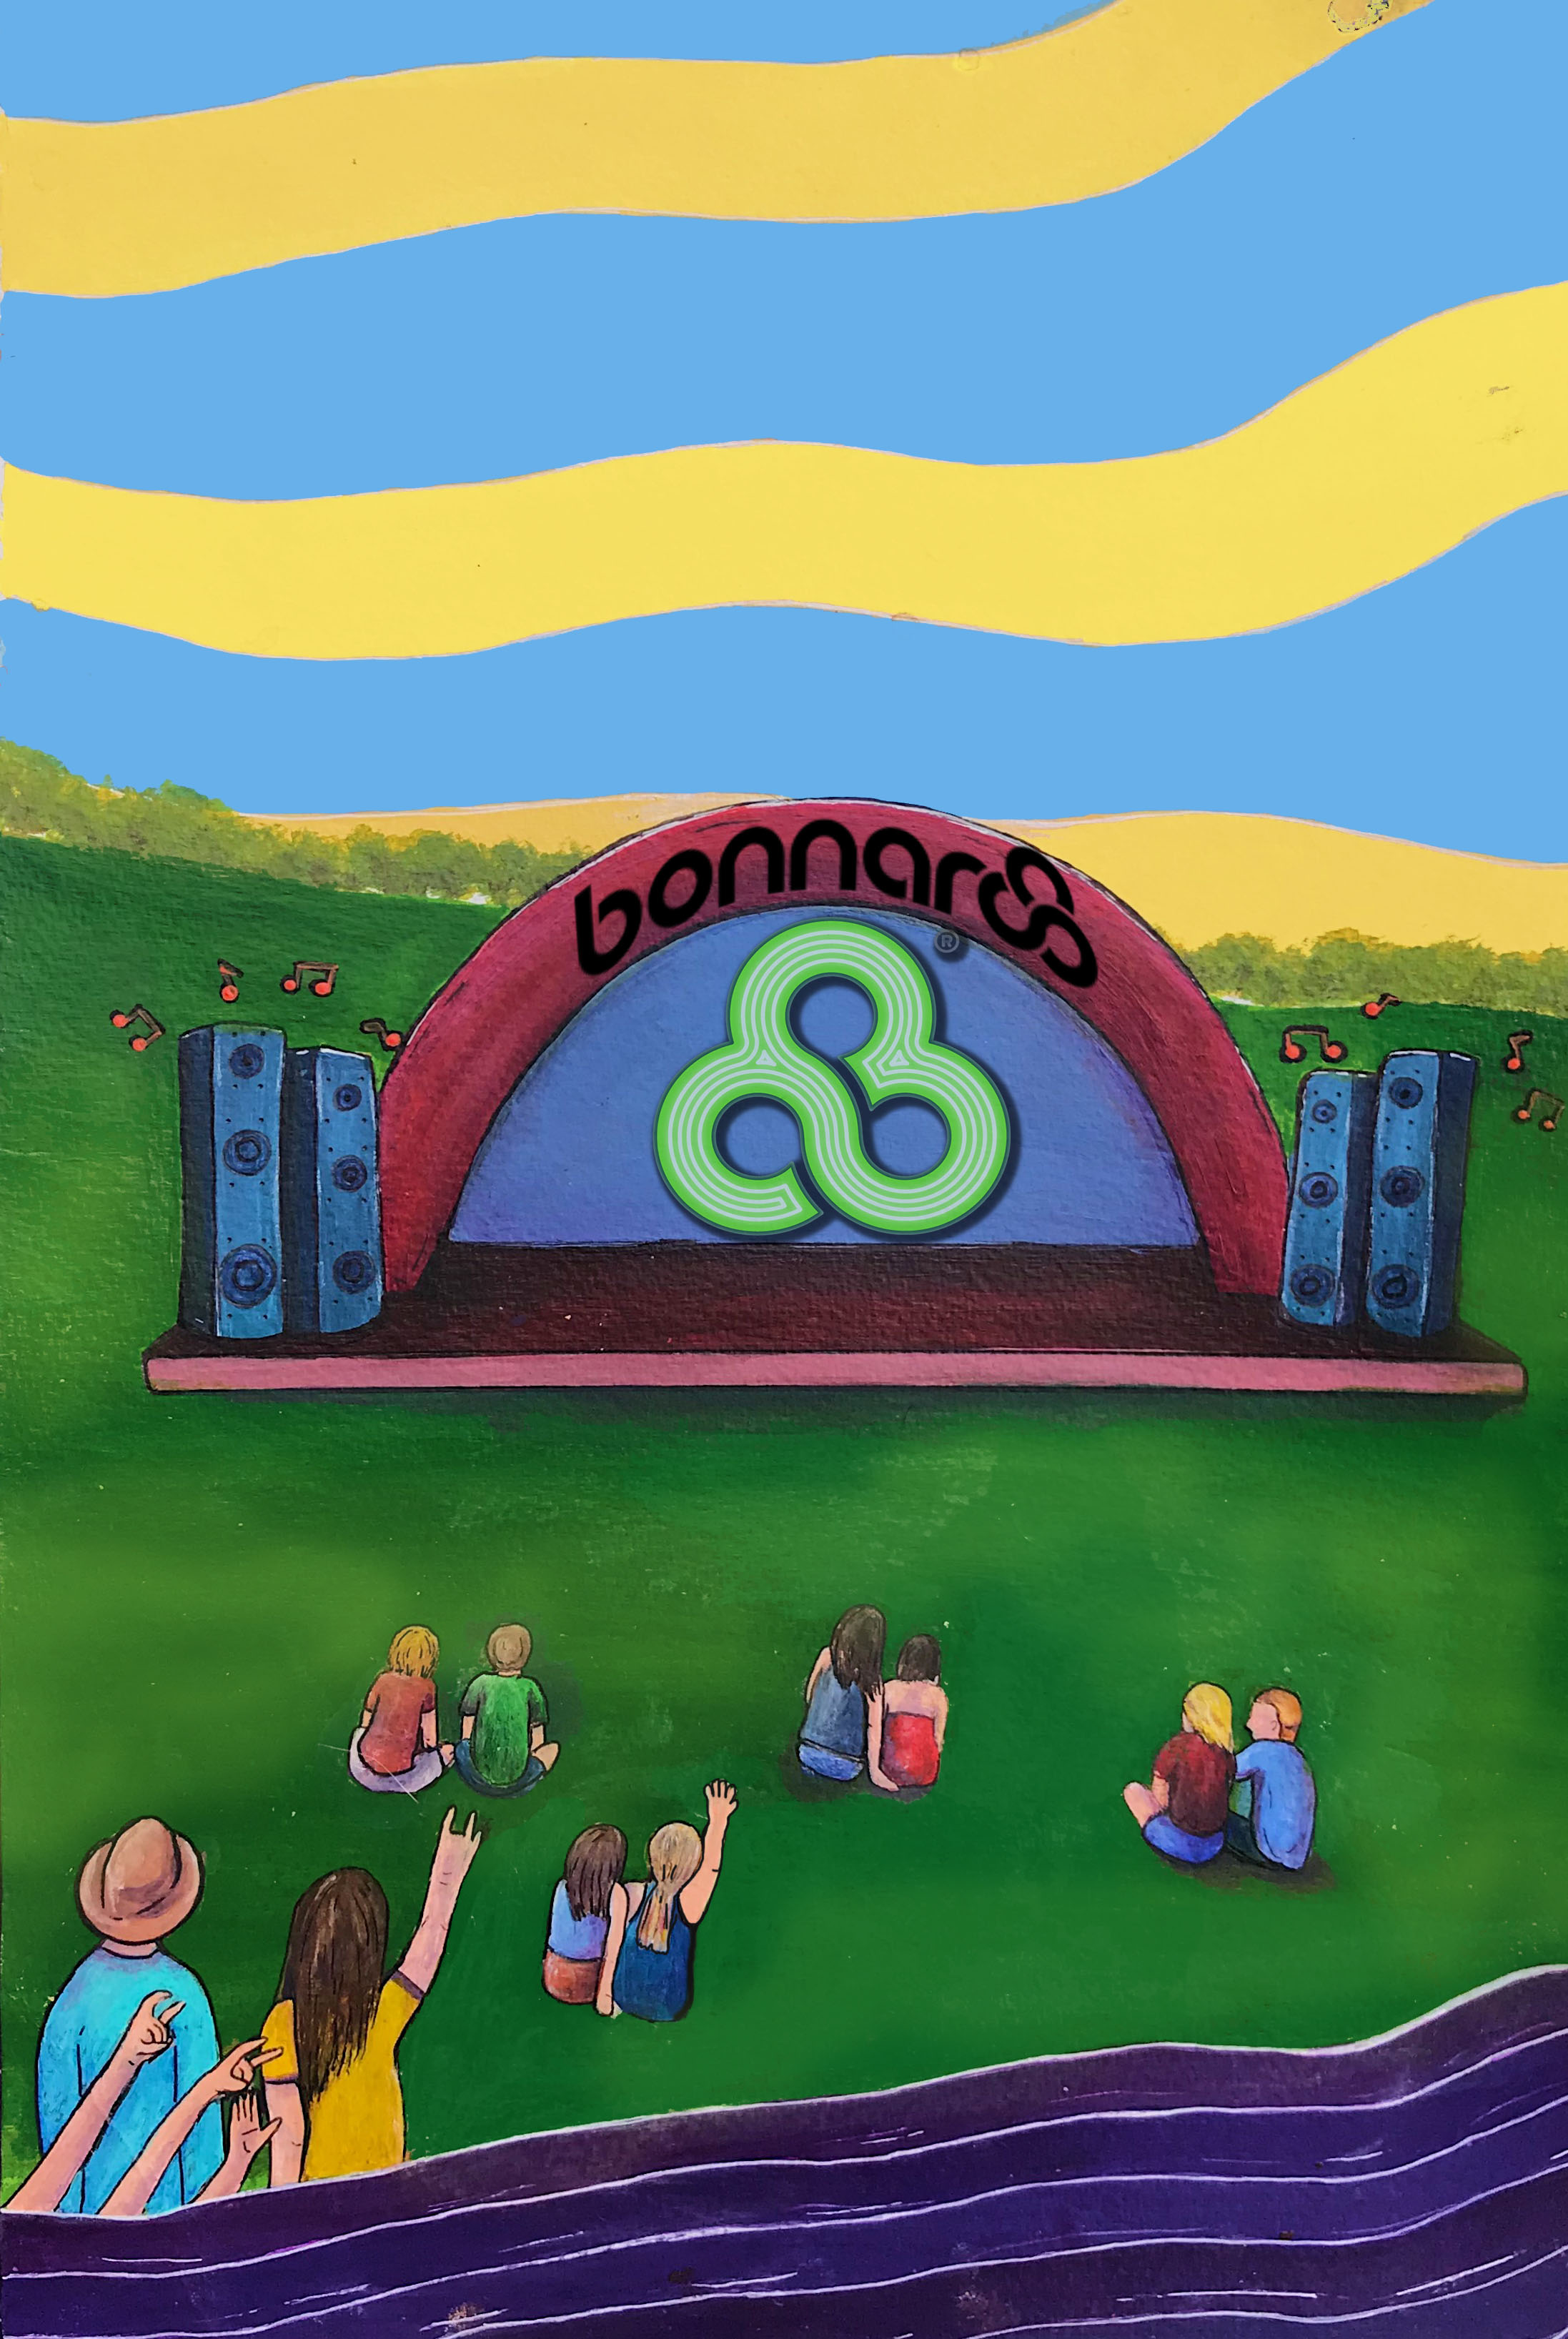 Mock 2018 Bonnaroo Poster  Made with Acrylic paint, edited on Photoshop  3/3